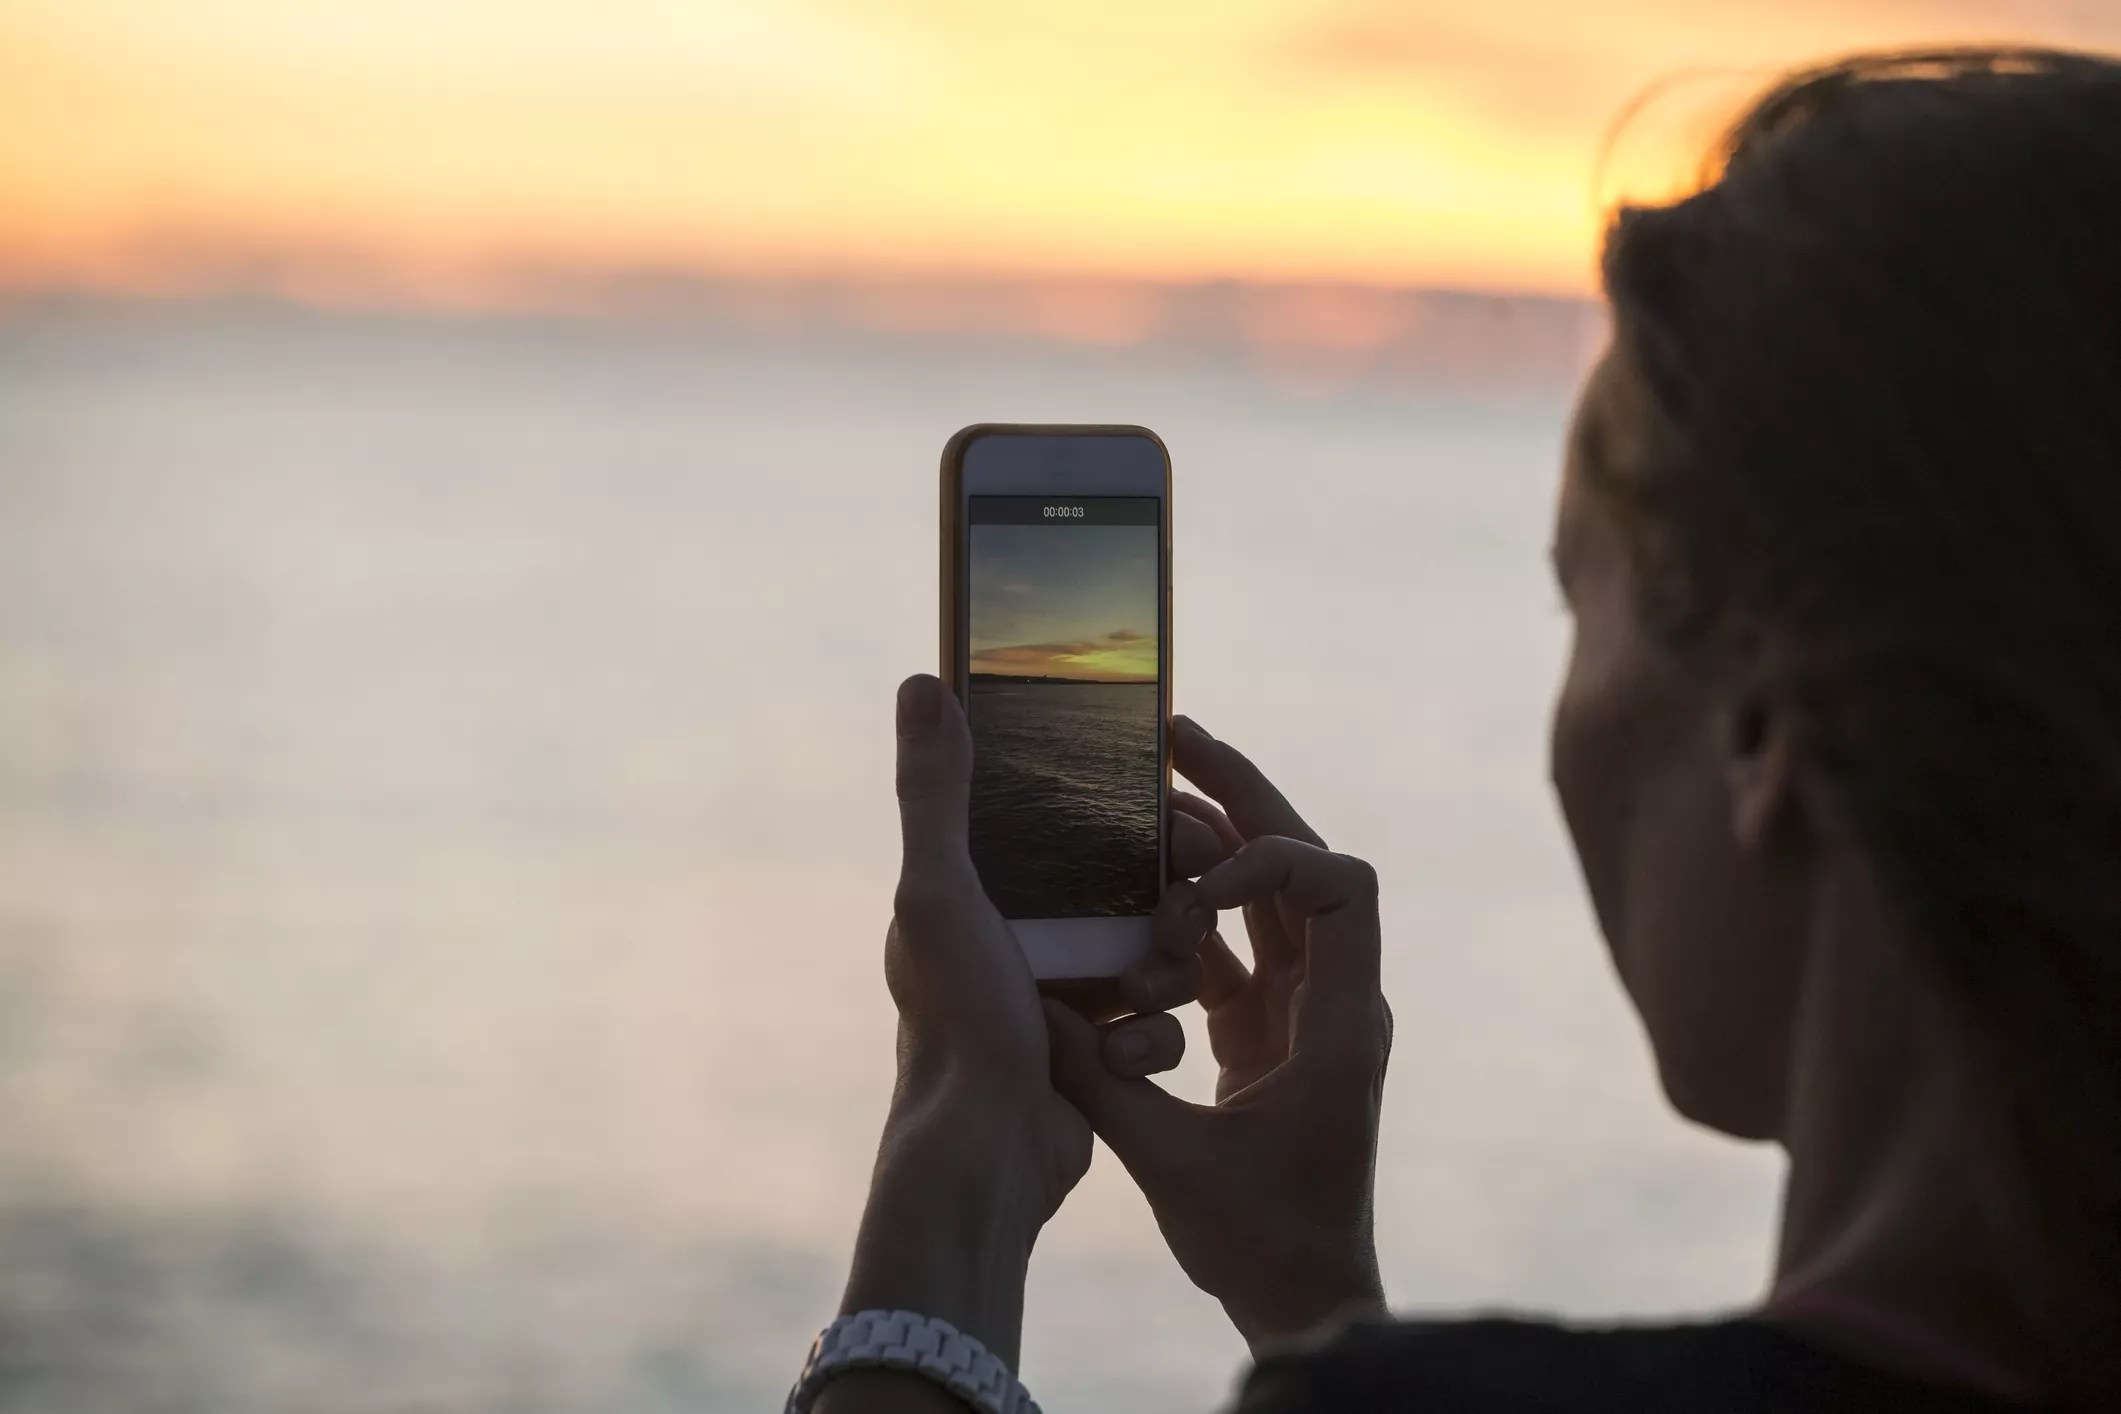 An image of a woman taking a photo of the sunset with her smartphone.